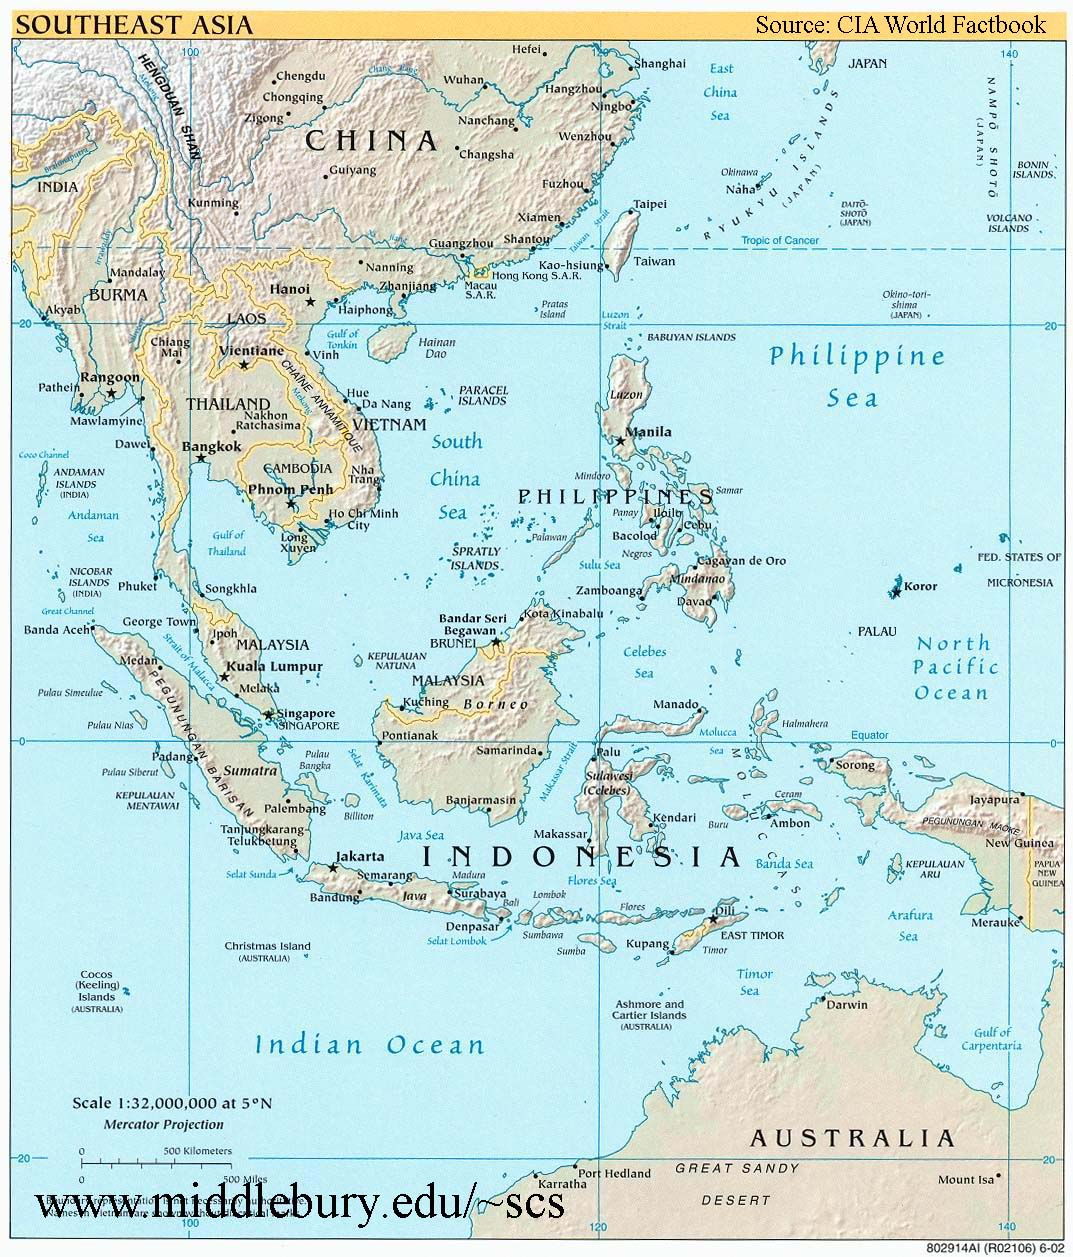 https://i1.wp.com/www.southchinasea.org/files/2011/08/Southeast-Asia-Reference-Map-CIA-World-Factbook.jpg